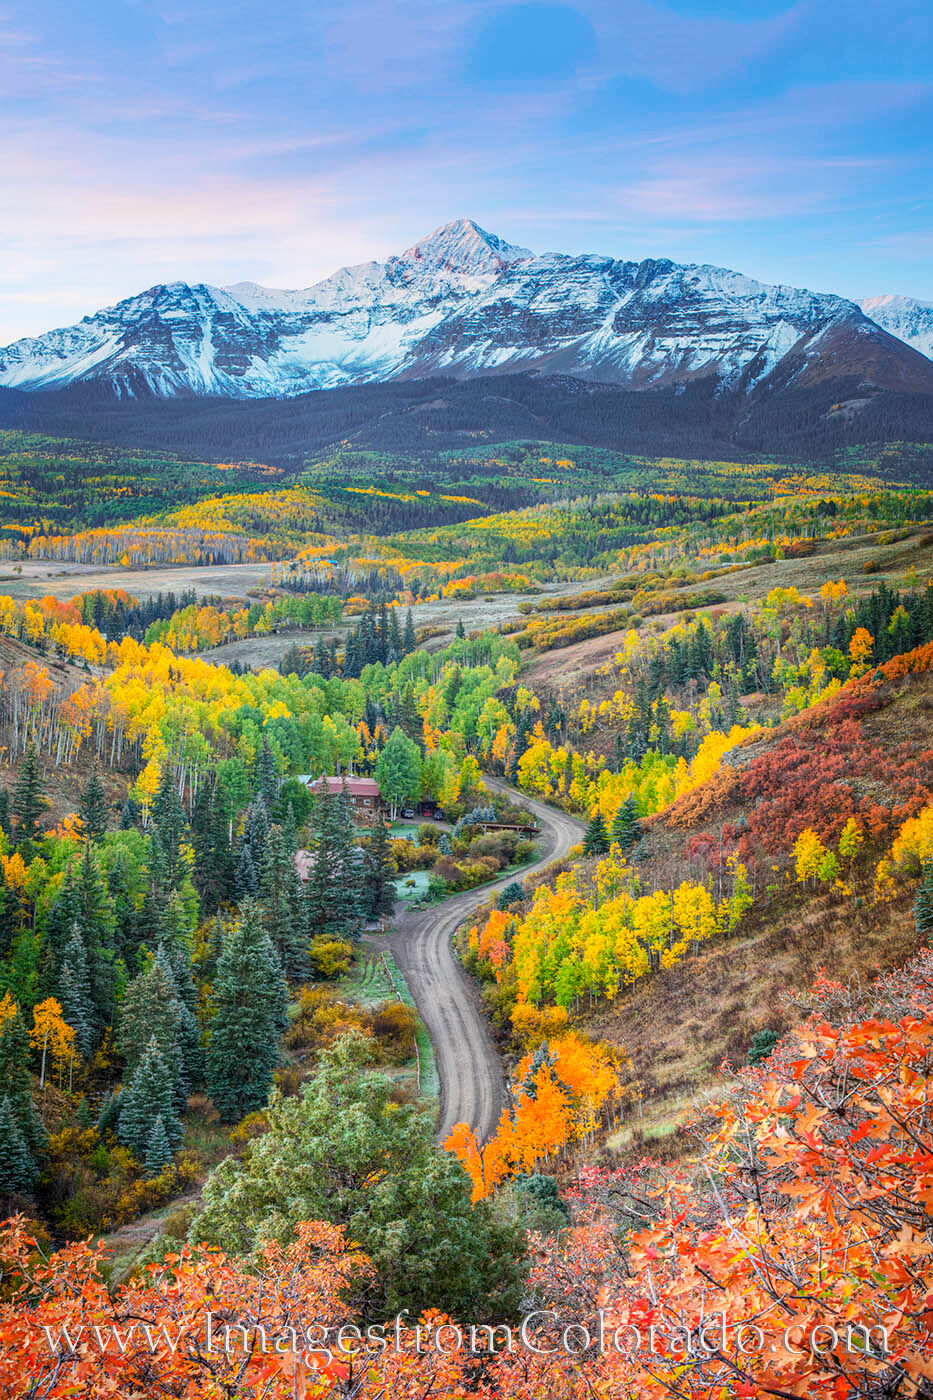 From a ridge high above a small dirt road, this view captures Mount Wilson in the distance with colorful aspen and scrub brush...